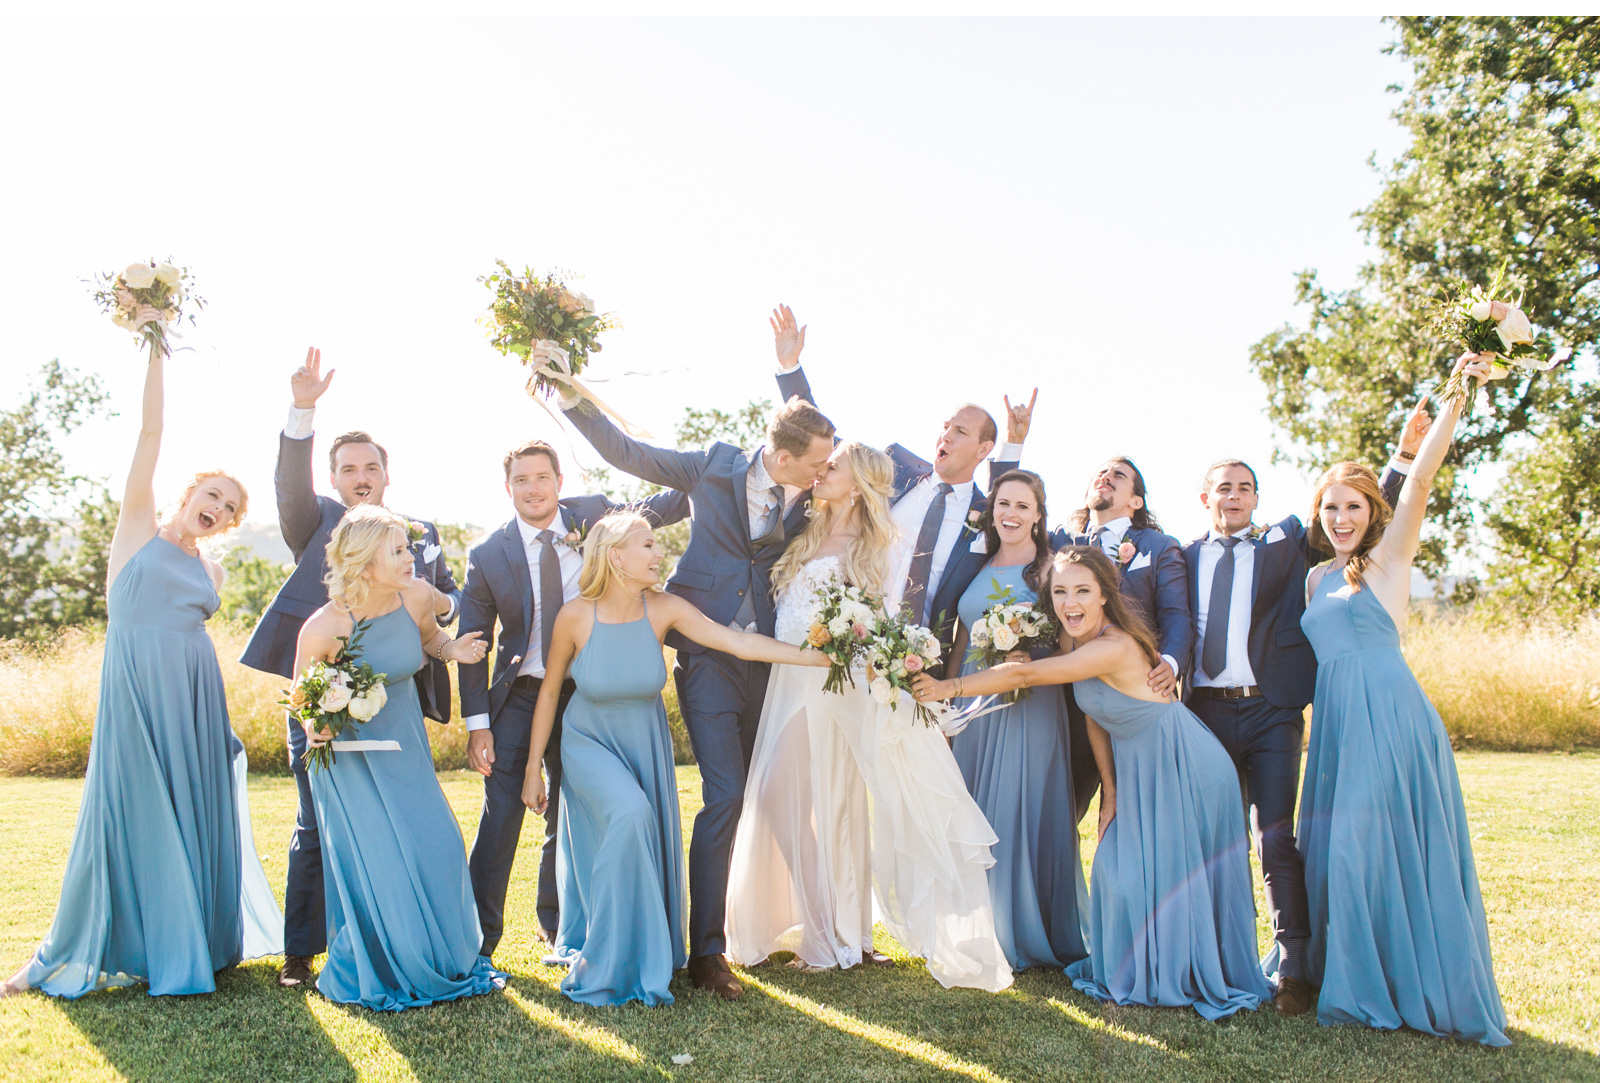 Paso-Robles-Style-Me-Pretty-The-Knot-Wedding-Natalie-Schutt-Photography's-Wedding_07.jpg